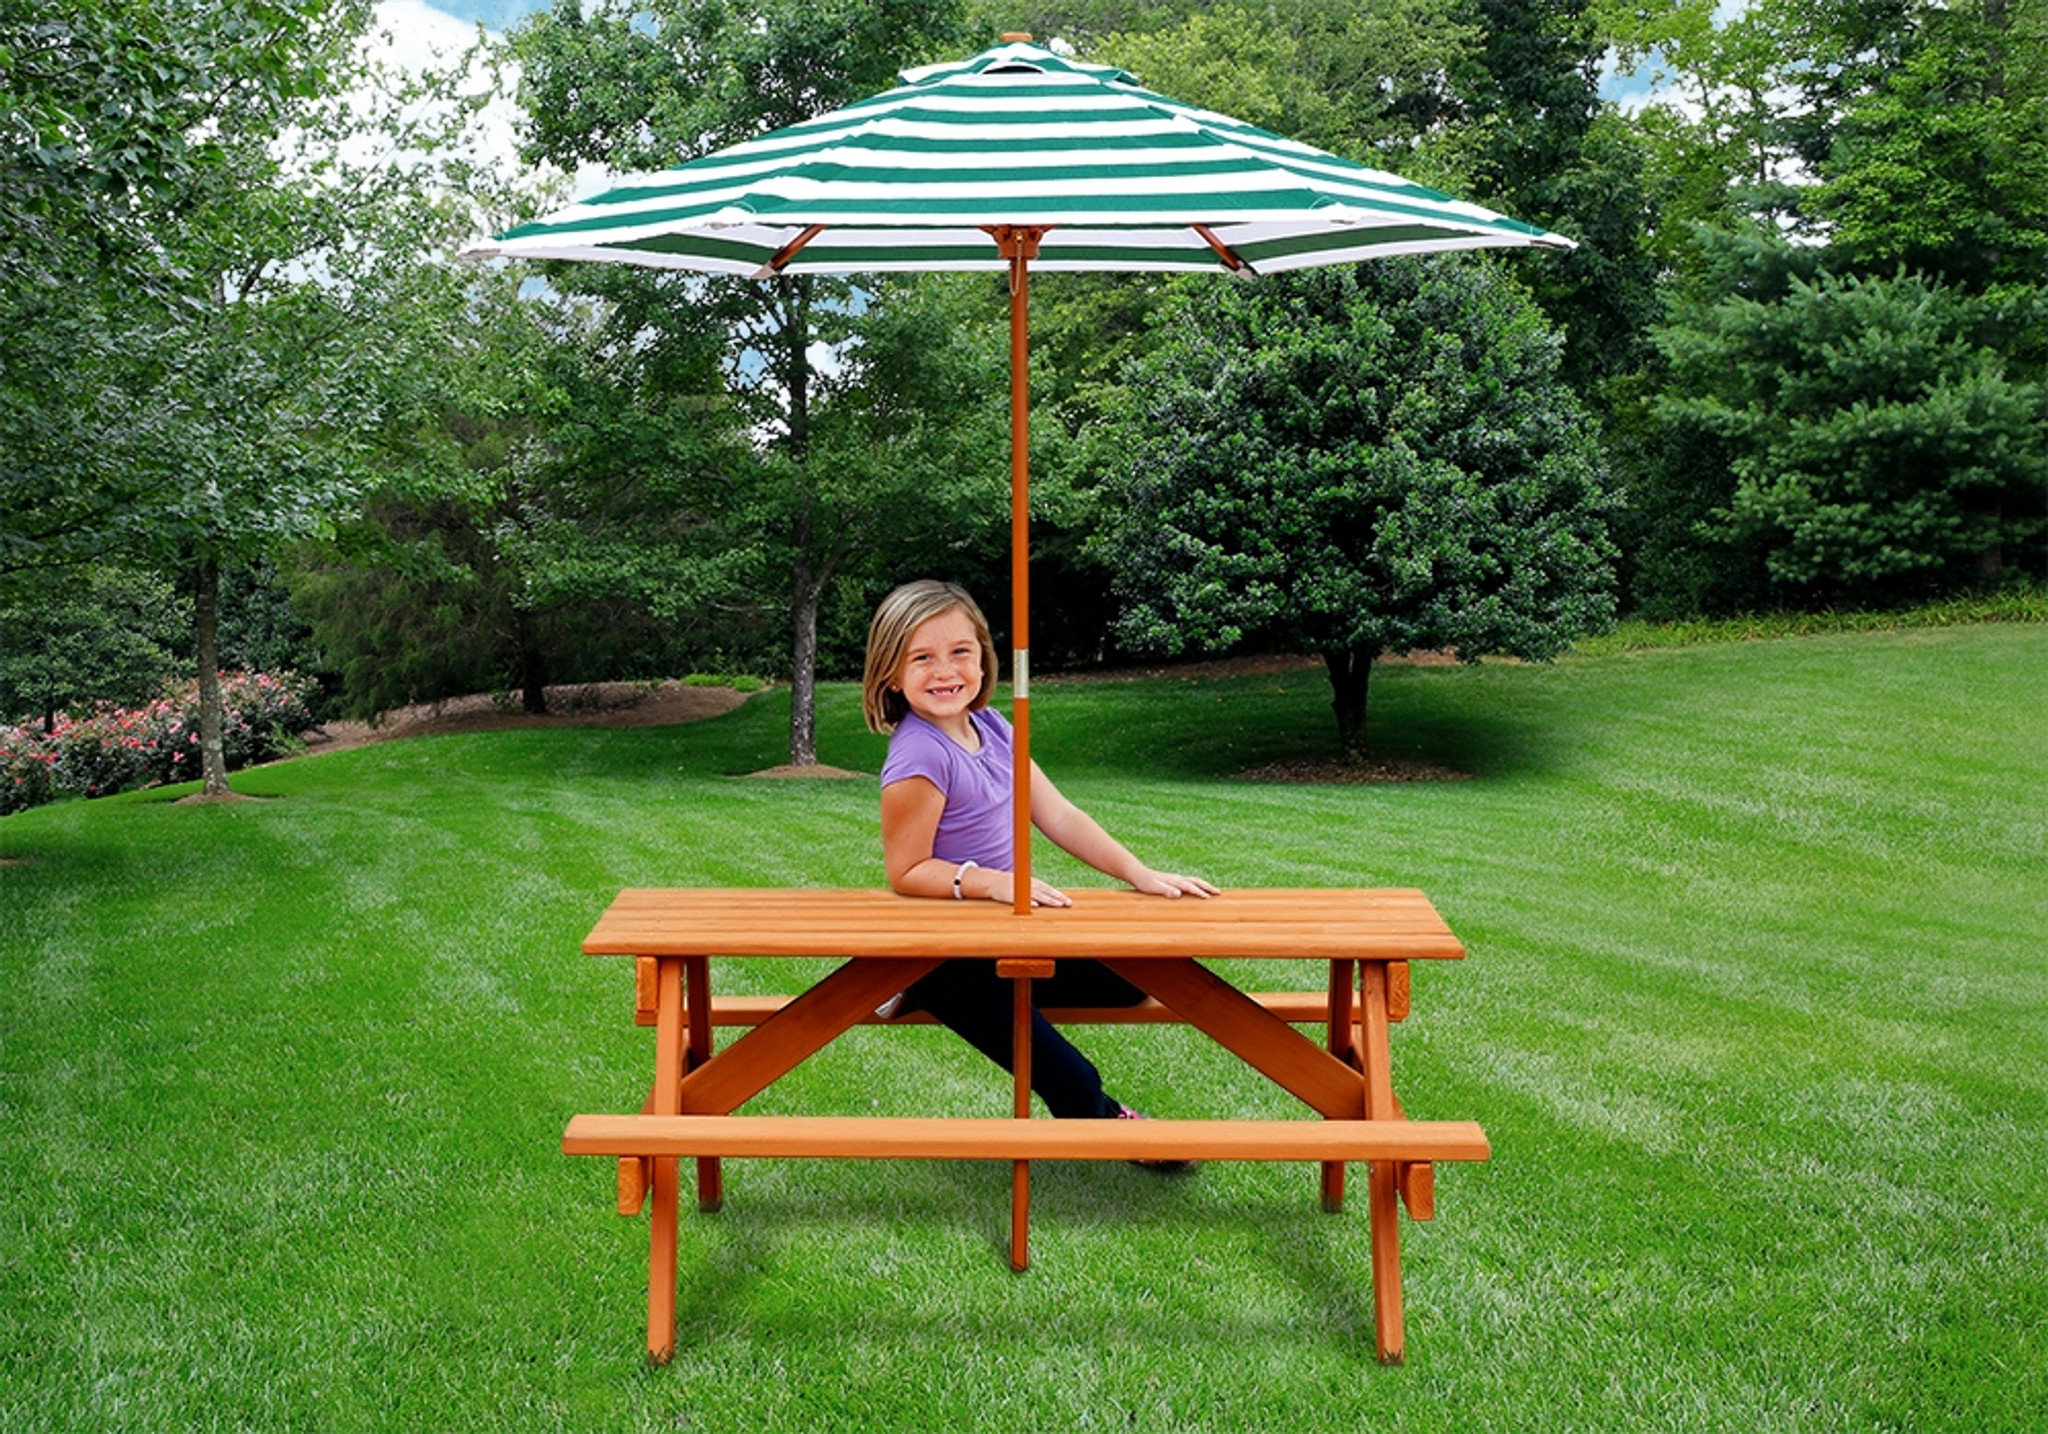 Children's Picnic Table with Shade Umbrella